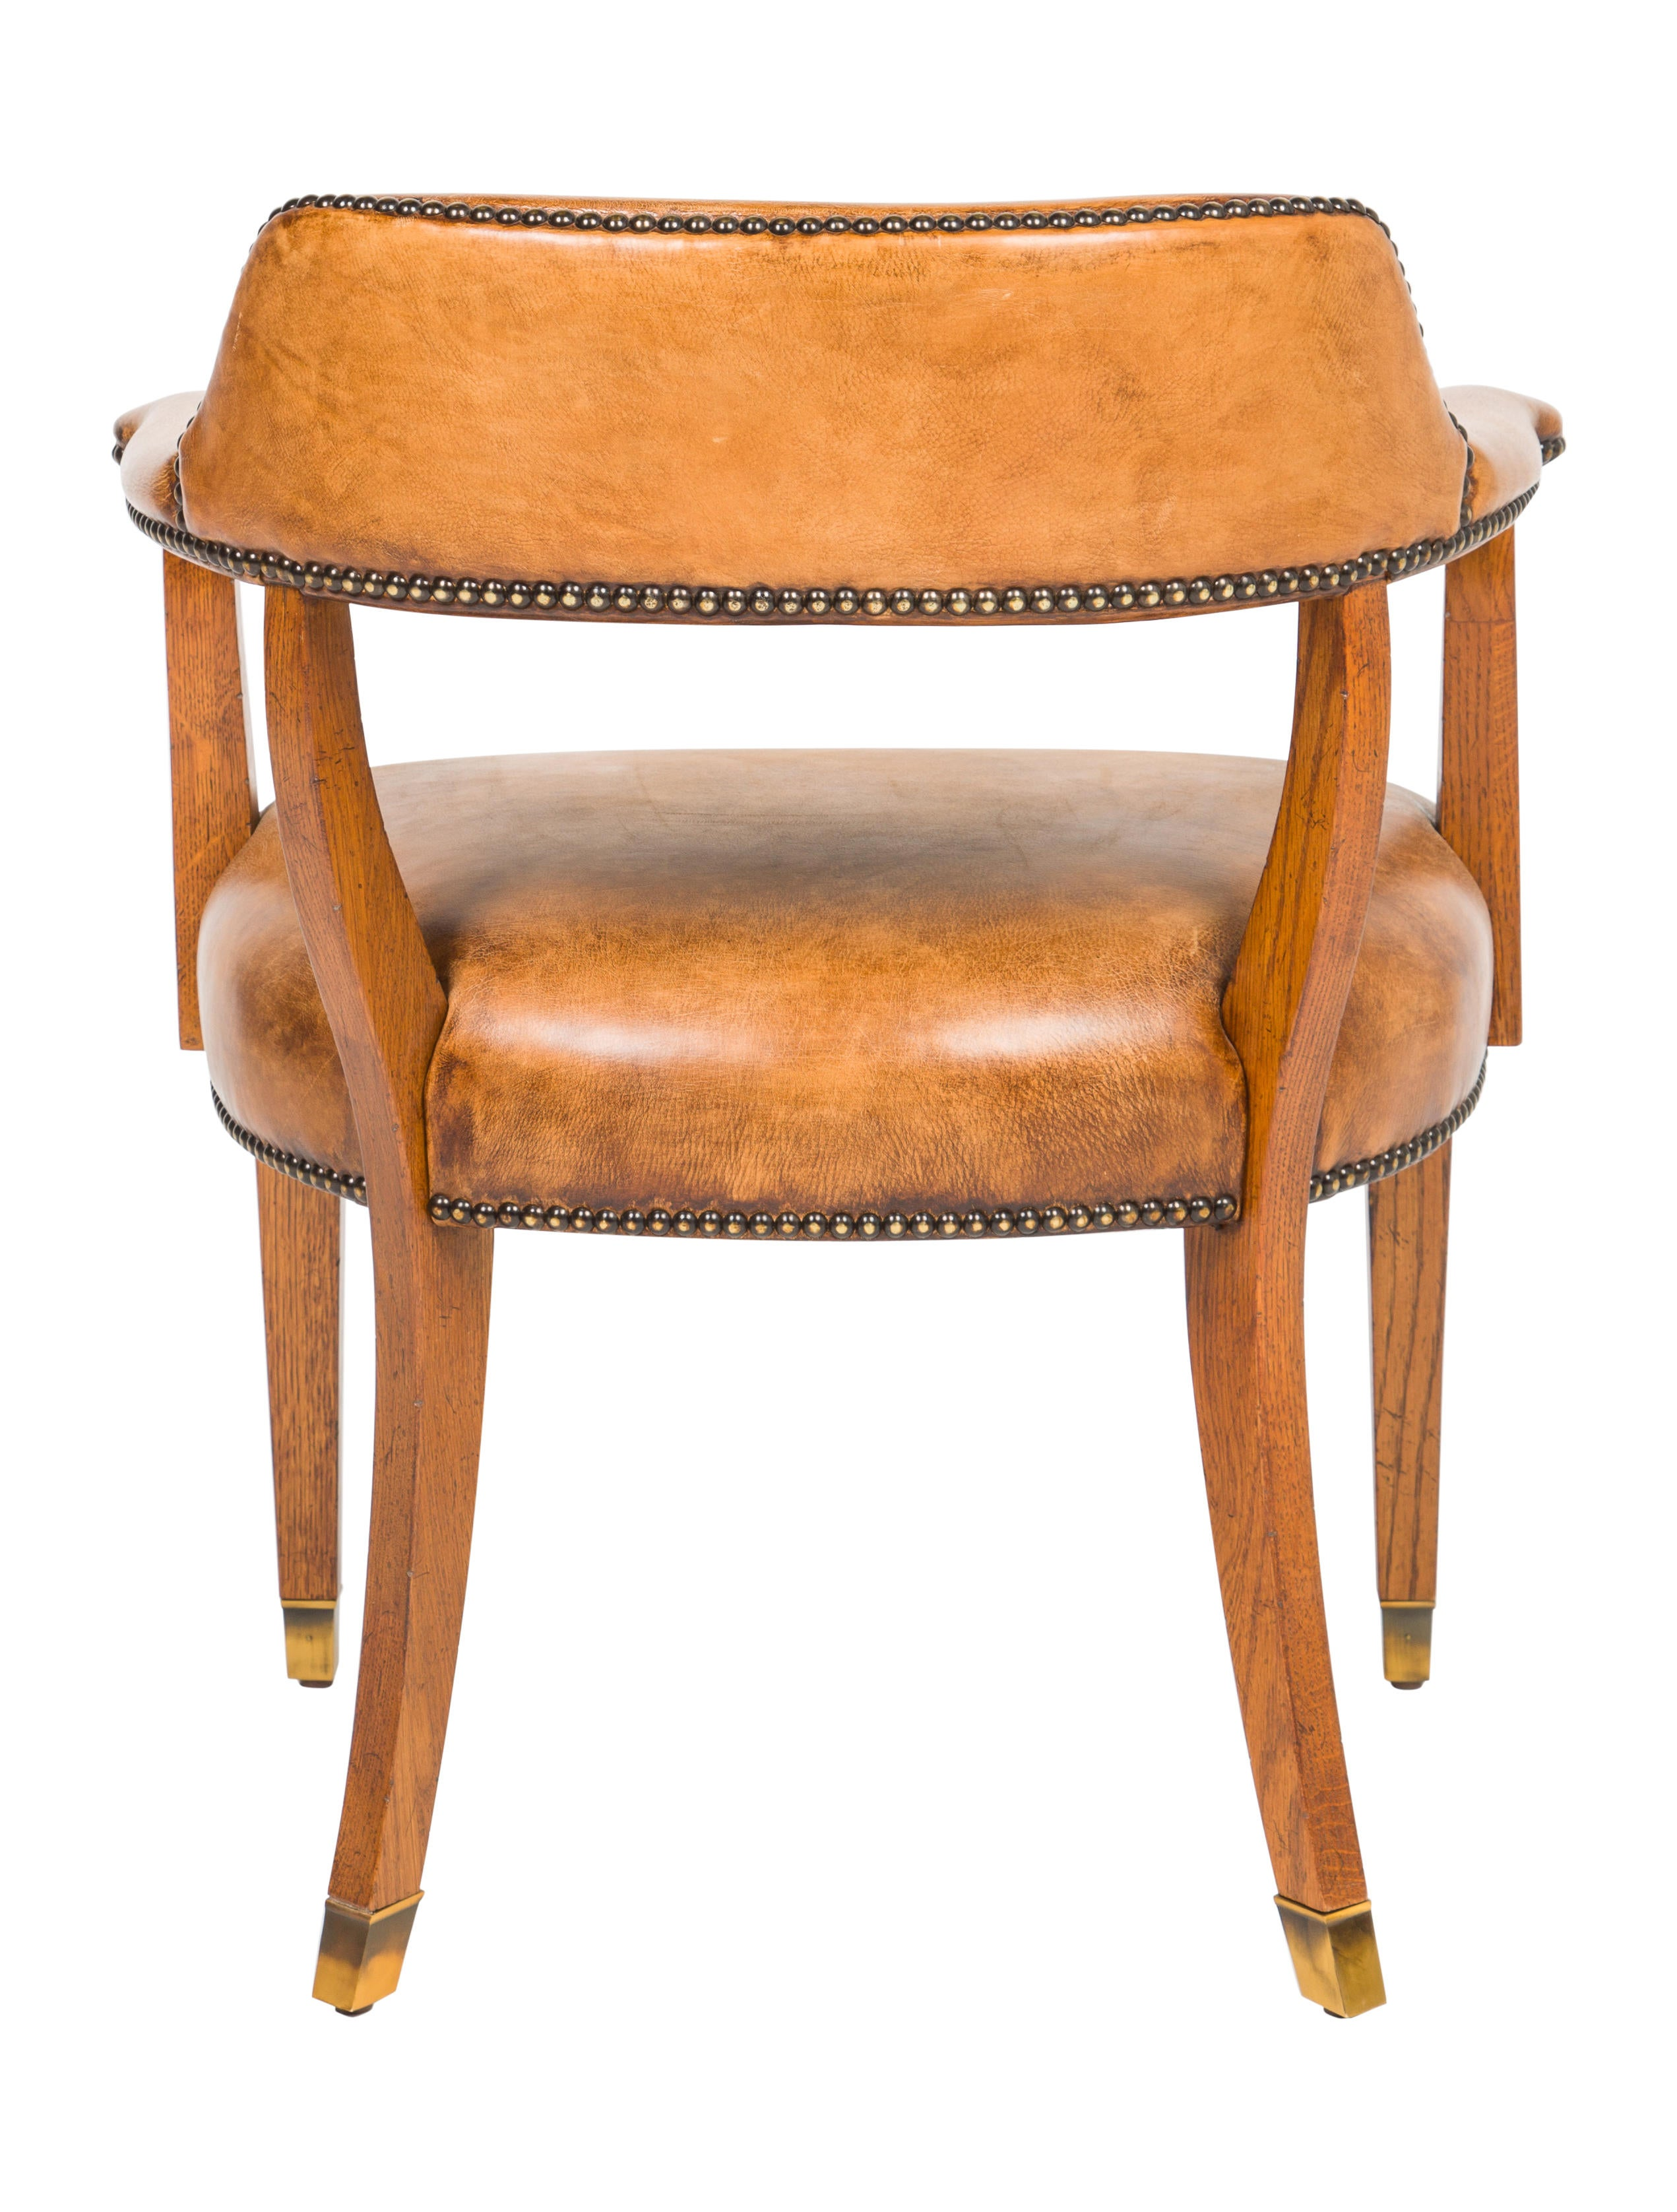 Pair of Hither Hills Studio Dining Chairs